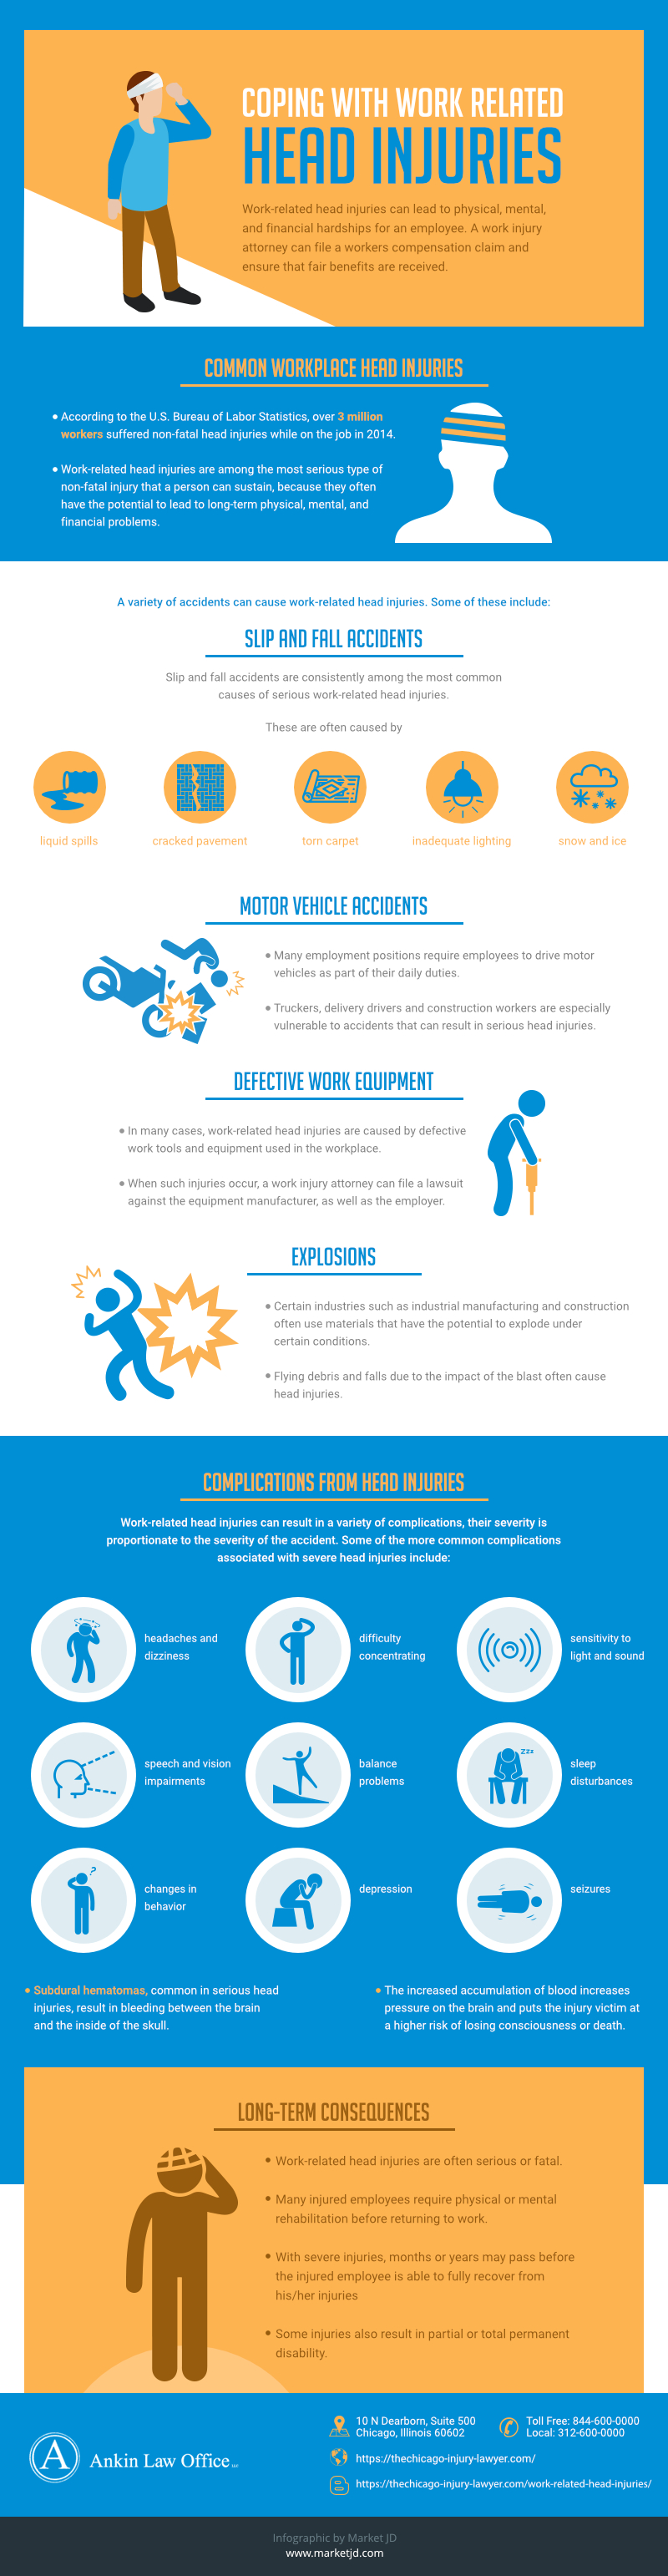 Coping With Work-Related Head Injuries_infographic